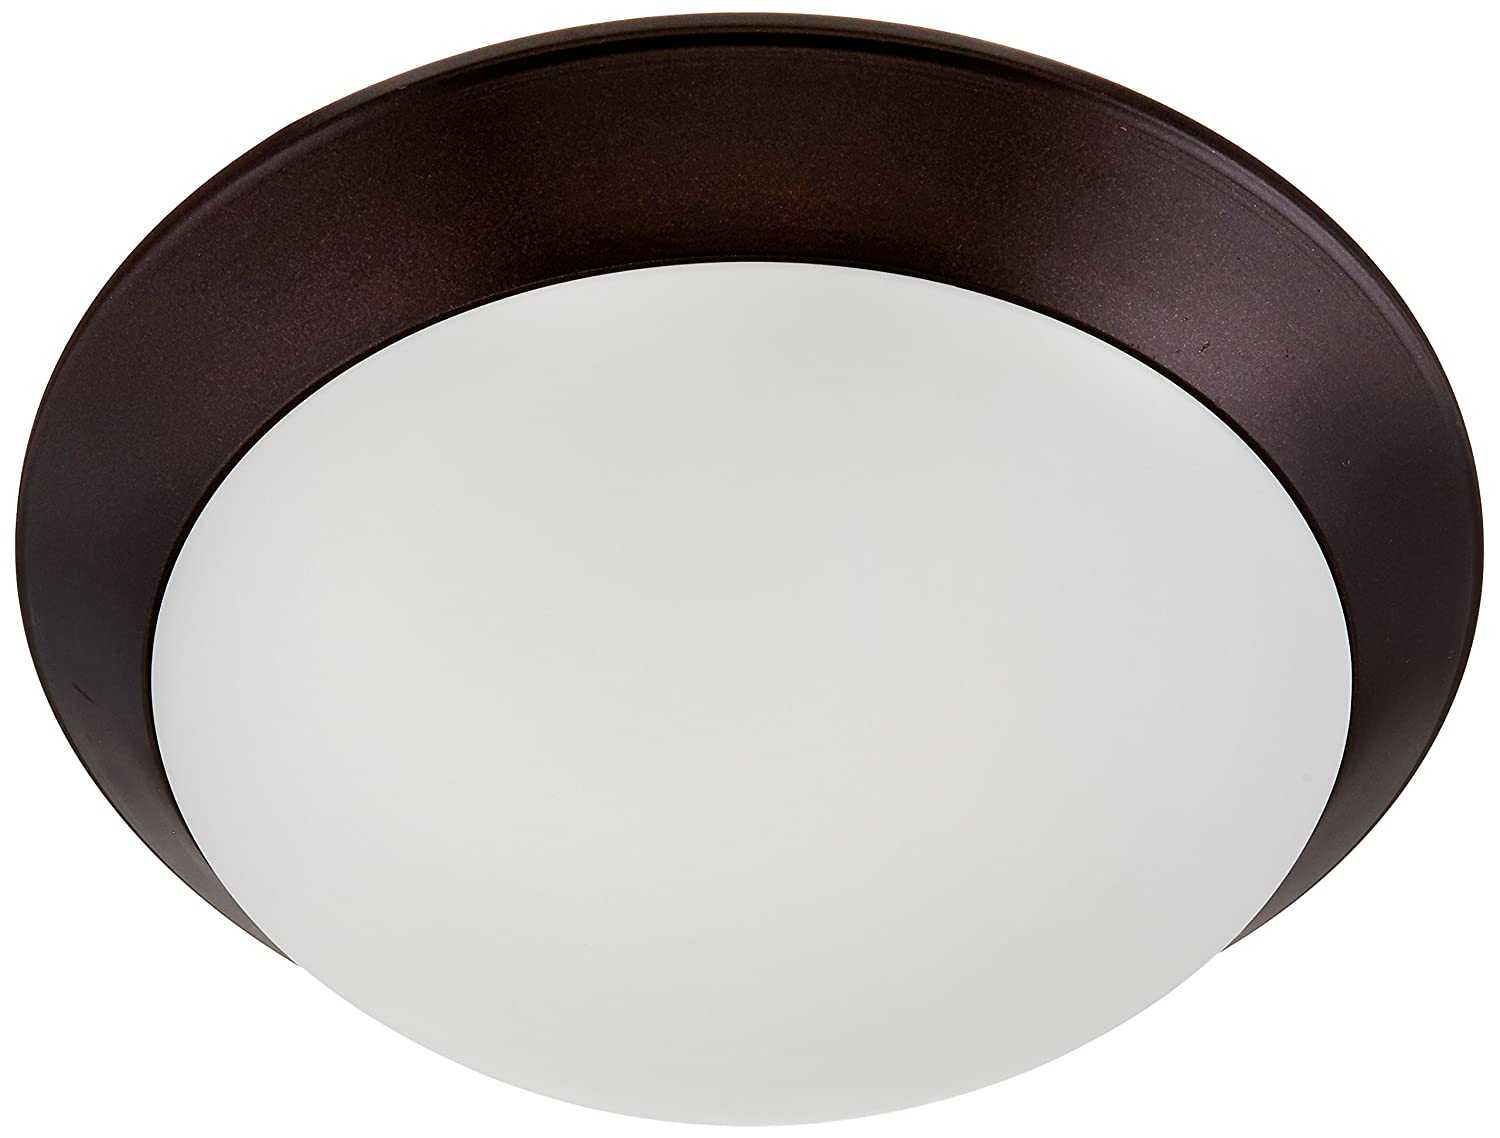 Amazon.com: DVI iluminación dvp0842 Valletta two-light Flush ...